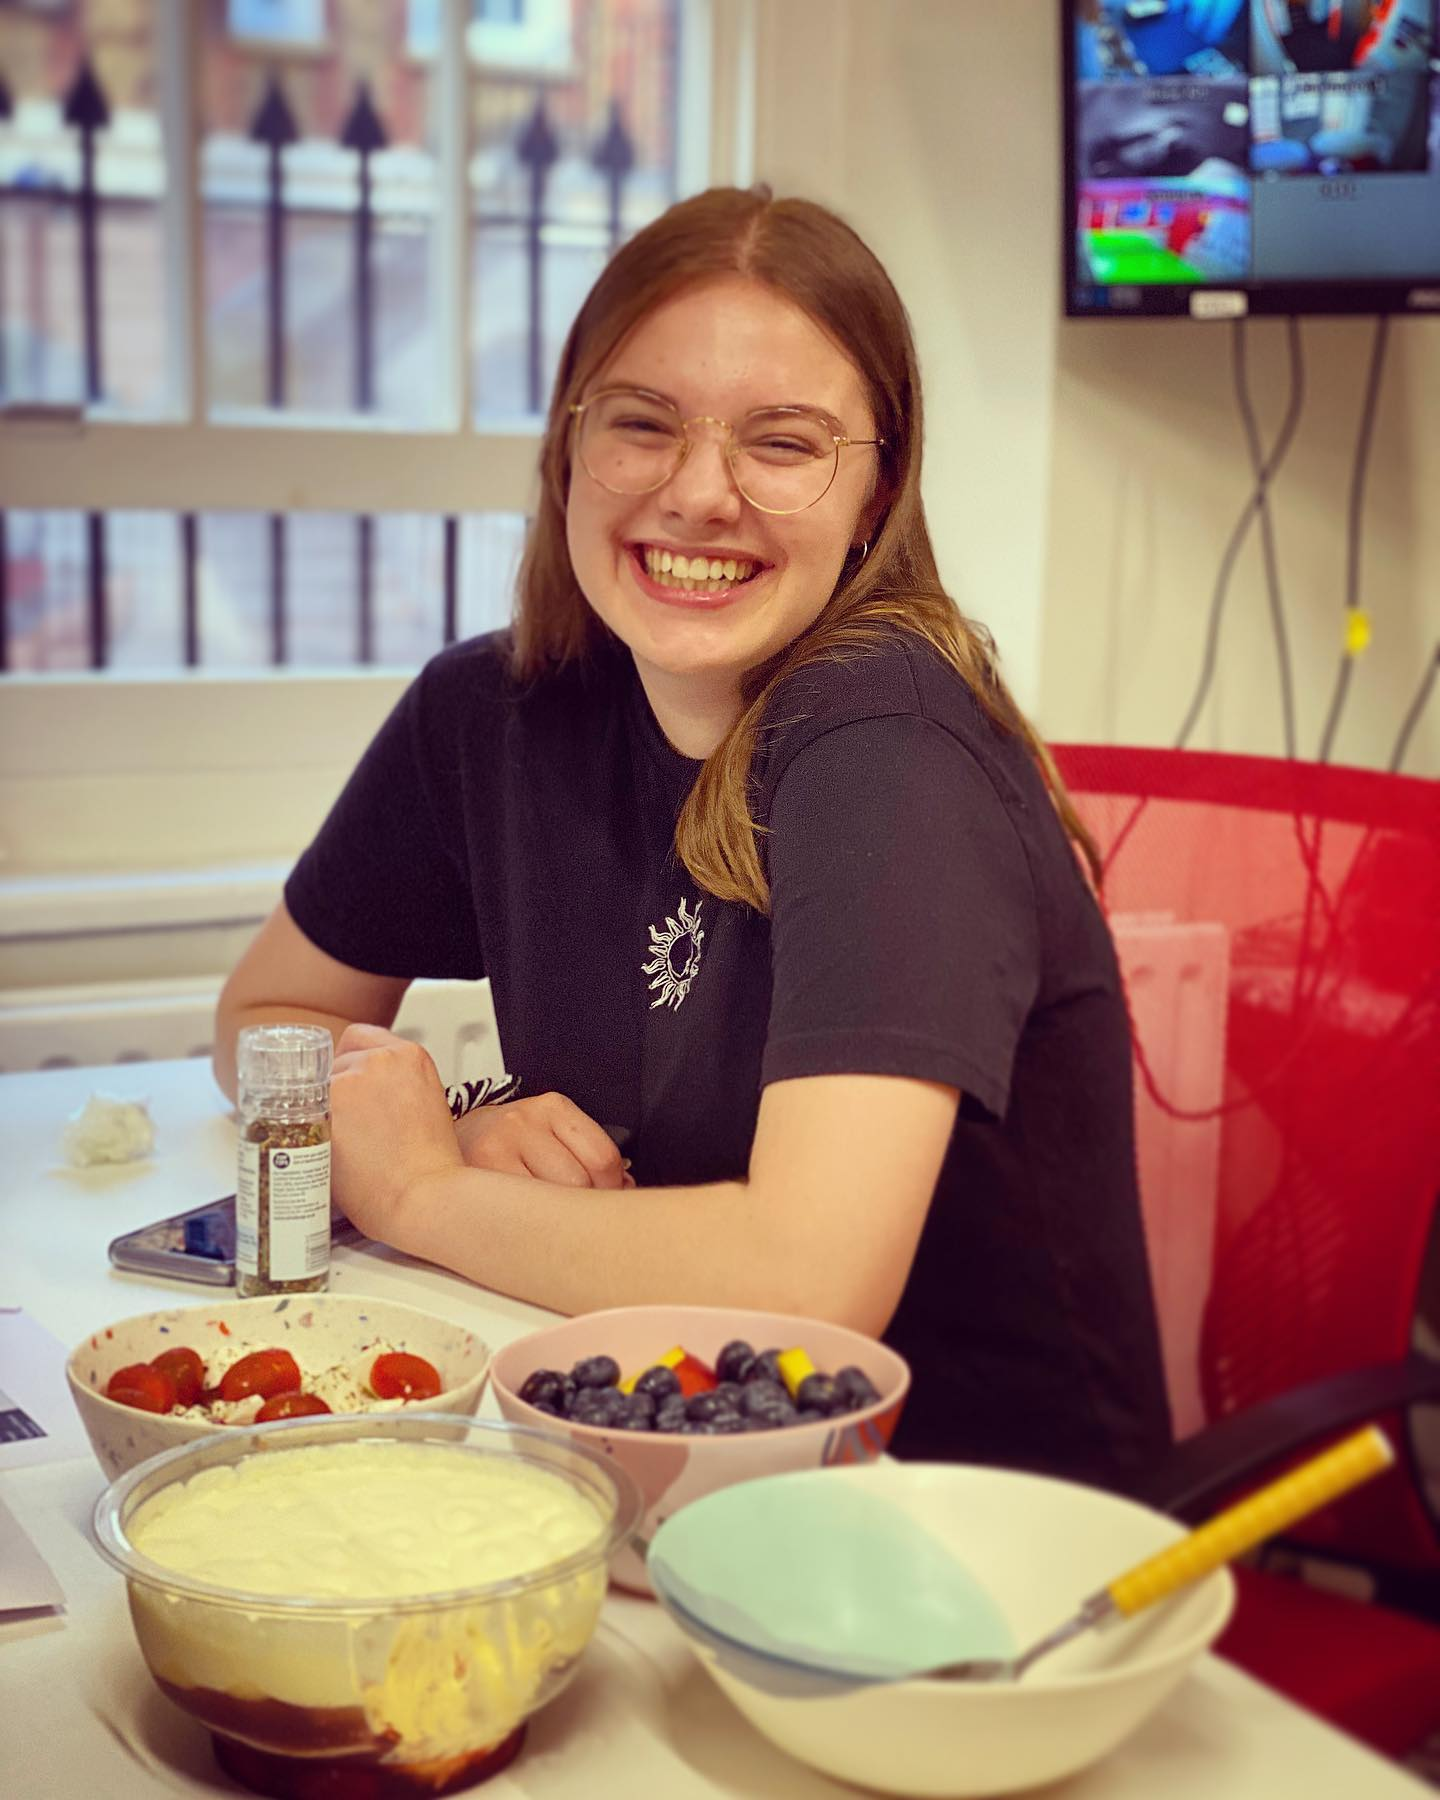 Having cake at Louise House is pretty much compulsory! So here's Emily enjoying some very yummy and refreshing fruit . . .